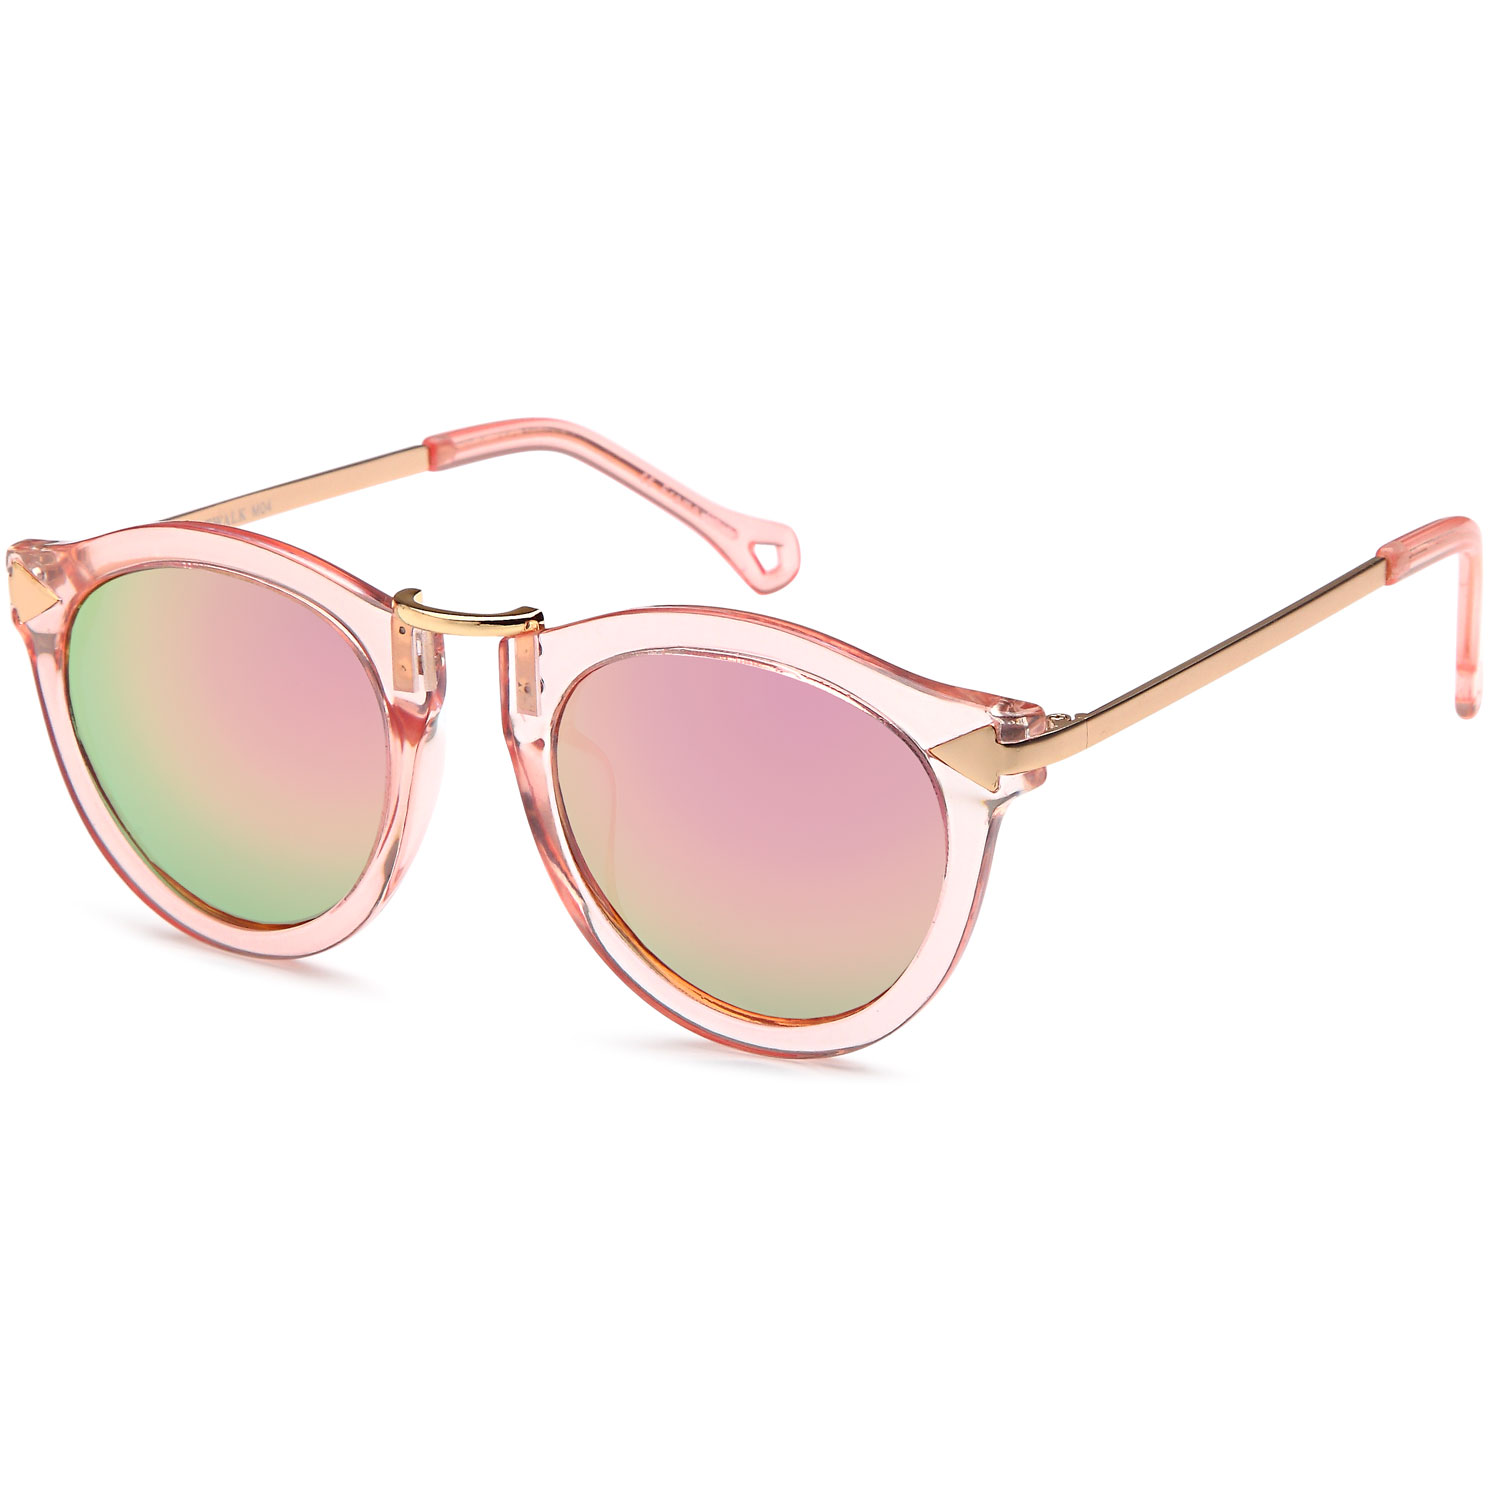 b7e120c5c2971 CATWALK - CATWALK UV400 Womens Round Cat Eye Sunglasses with Arrow Design  Metal Fashion Frame and Flash Lens Option - Mirror Blue Lens on Black Gold  Frame ...